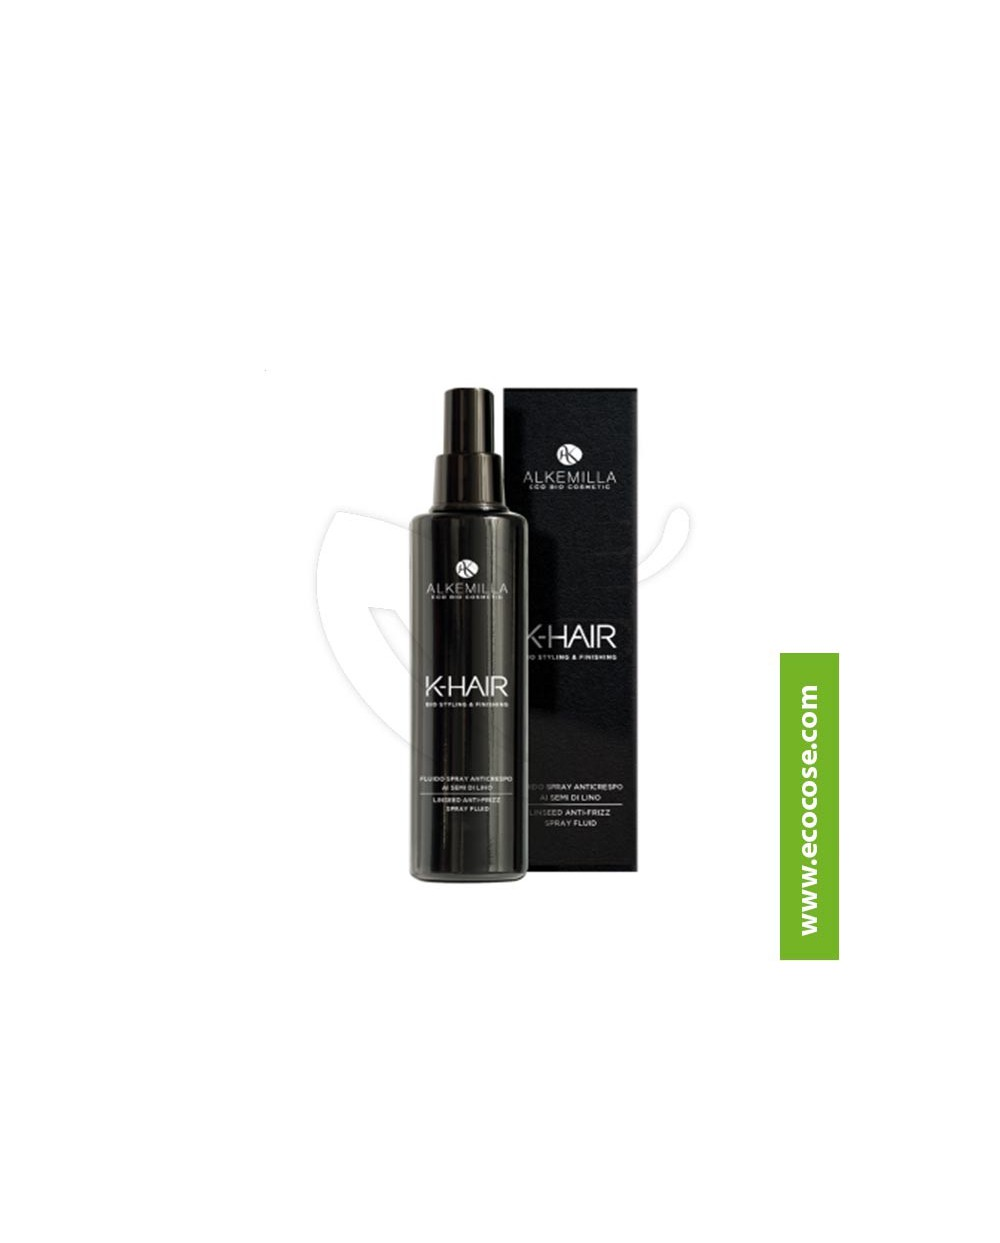 Alkemilla - K-HAIR - Fluido Spray Anticrespo ai semi di lino